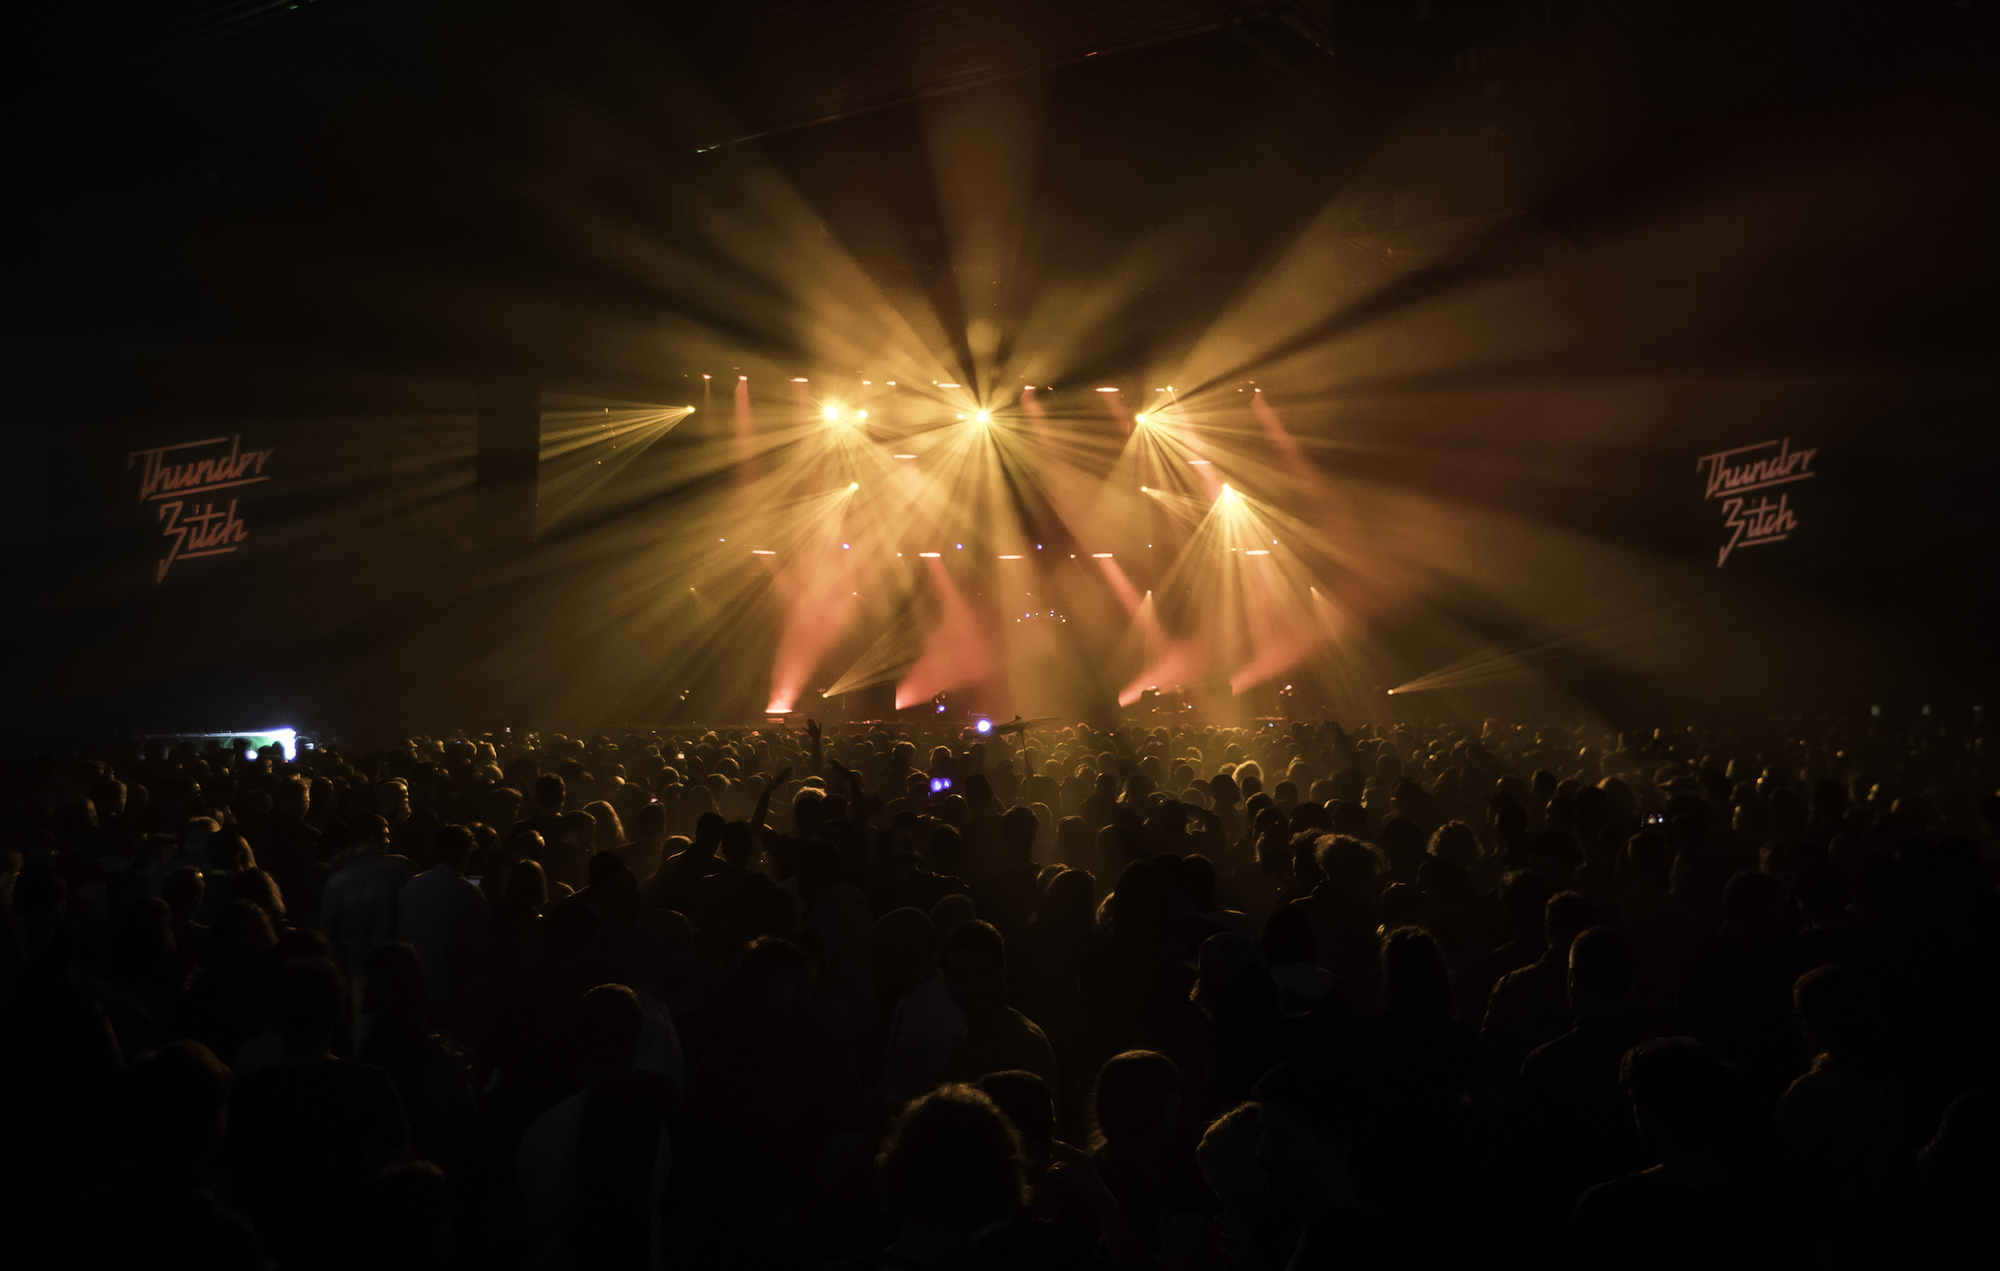 NME Festival blog: the excellently eclectic festival was a low-key success